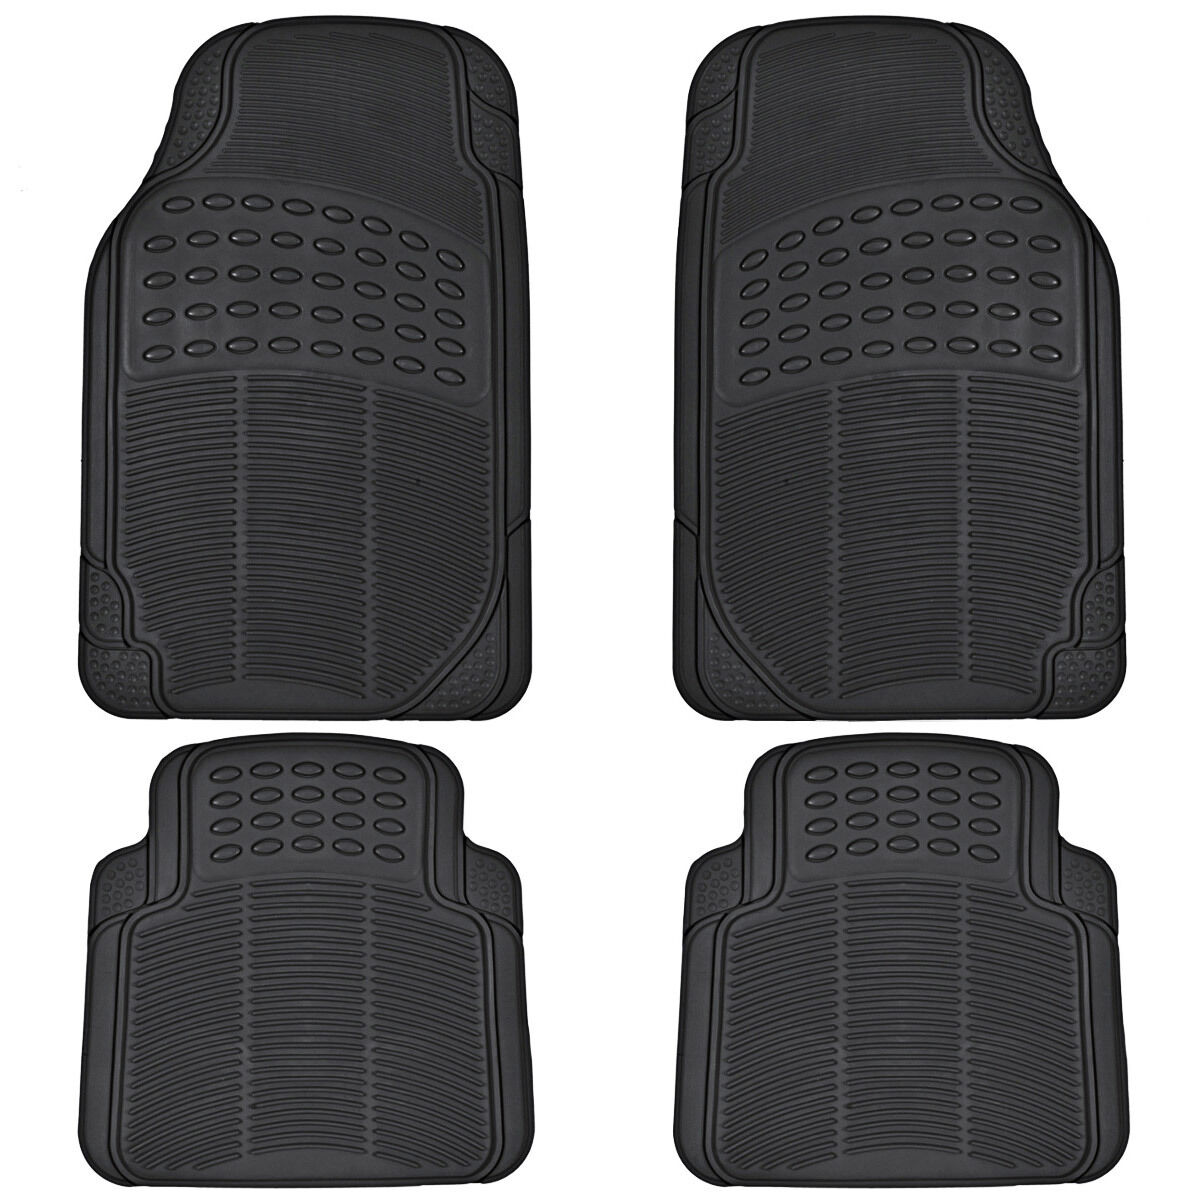 floor unusual xhzzdx fast mats weartech plastic within on avm custom cute free to shipping endearing carpet ga auto car